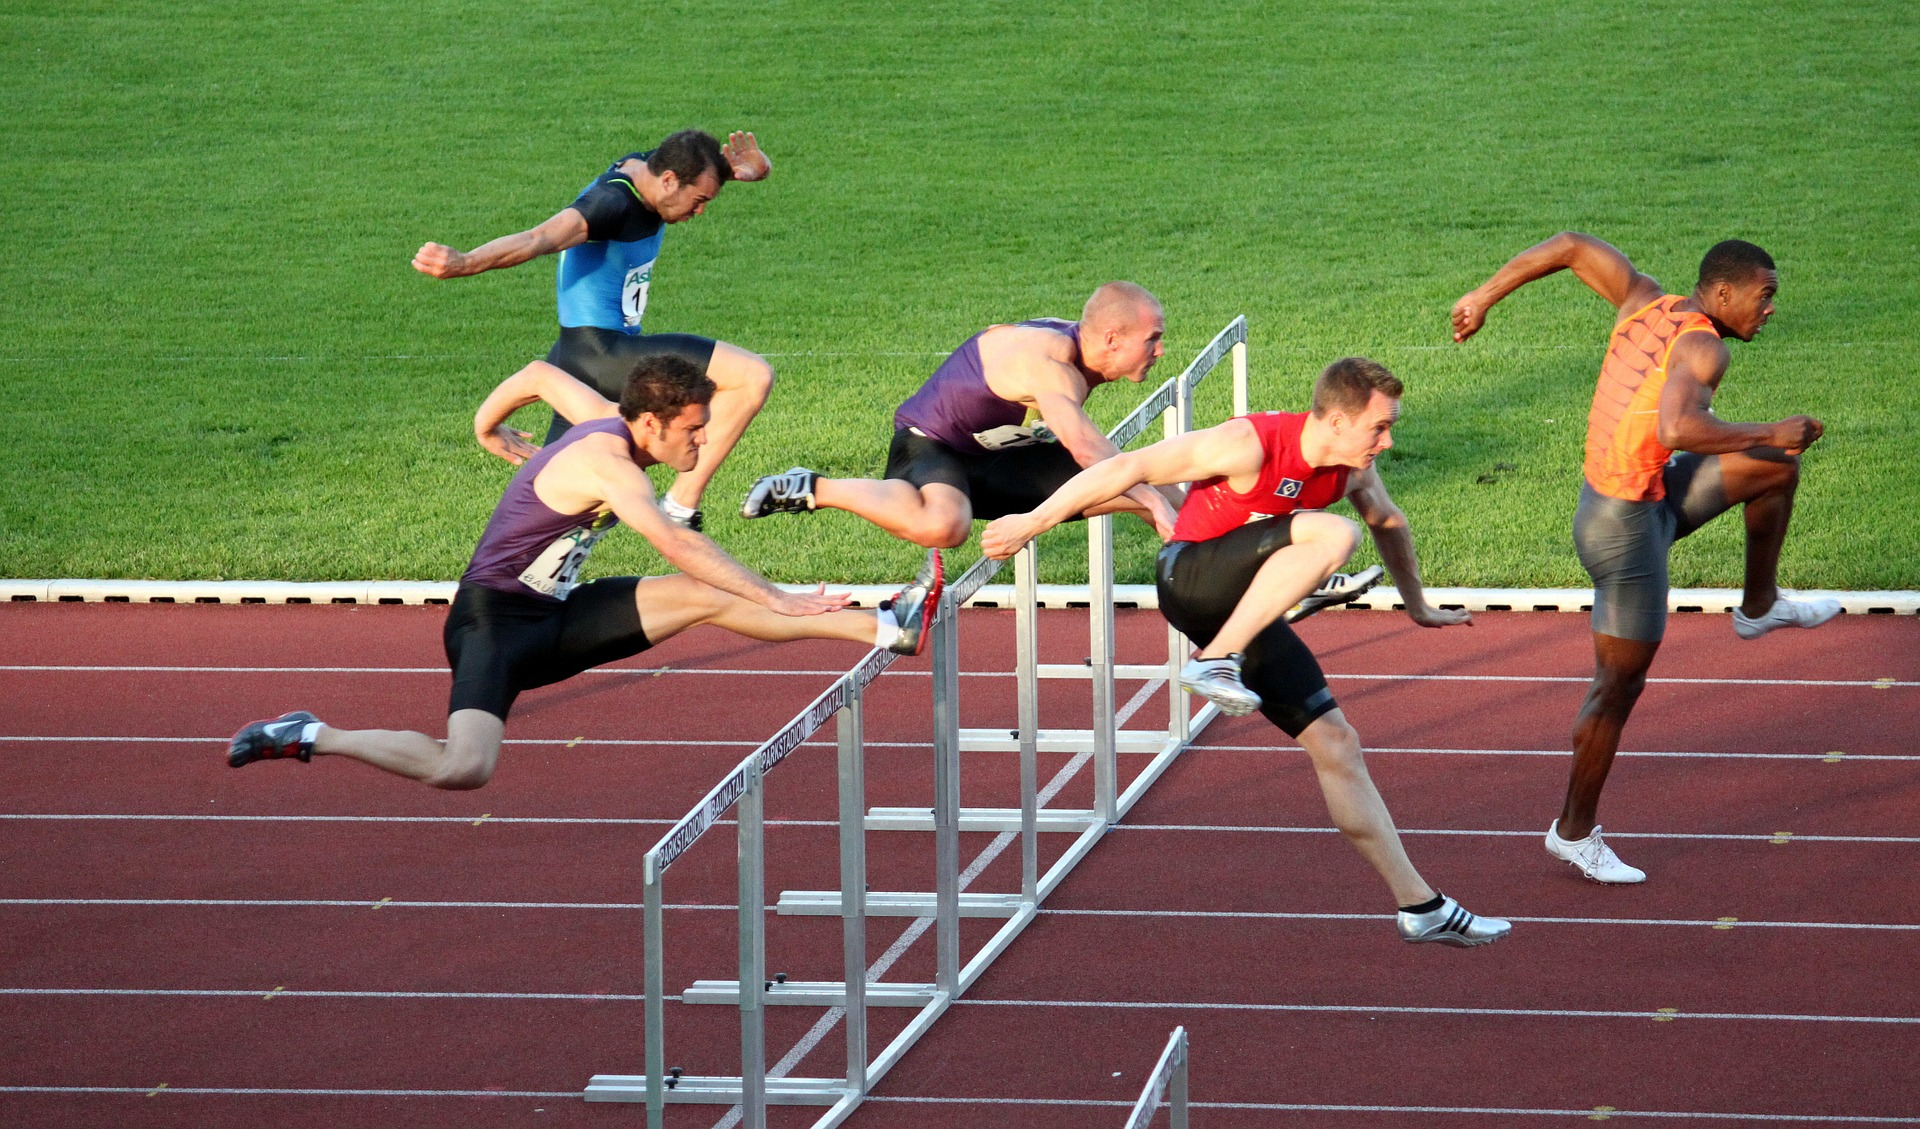 While some hurdles are harder to jump over than others, figuring out how to best market your products and services doesn't have to keep you up all night.